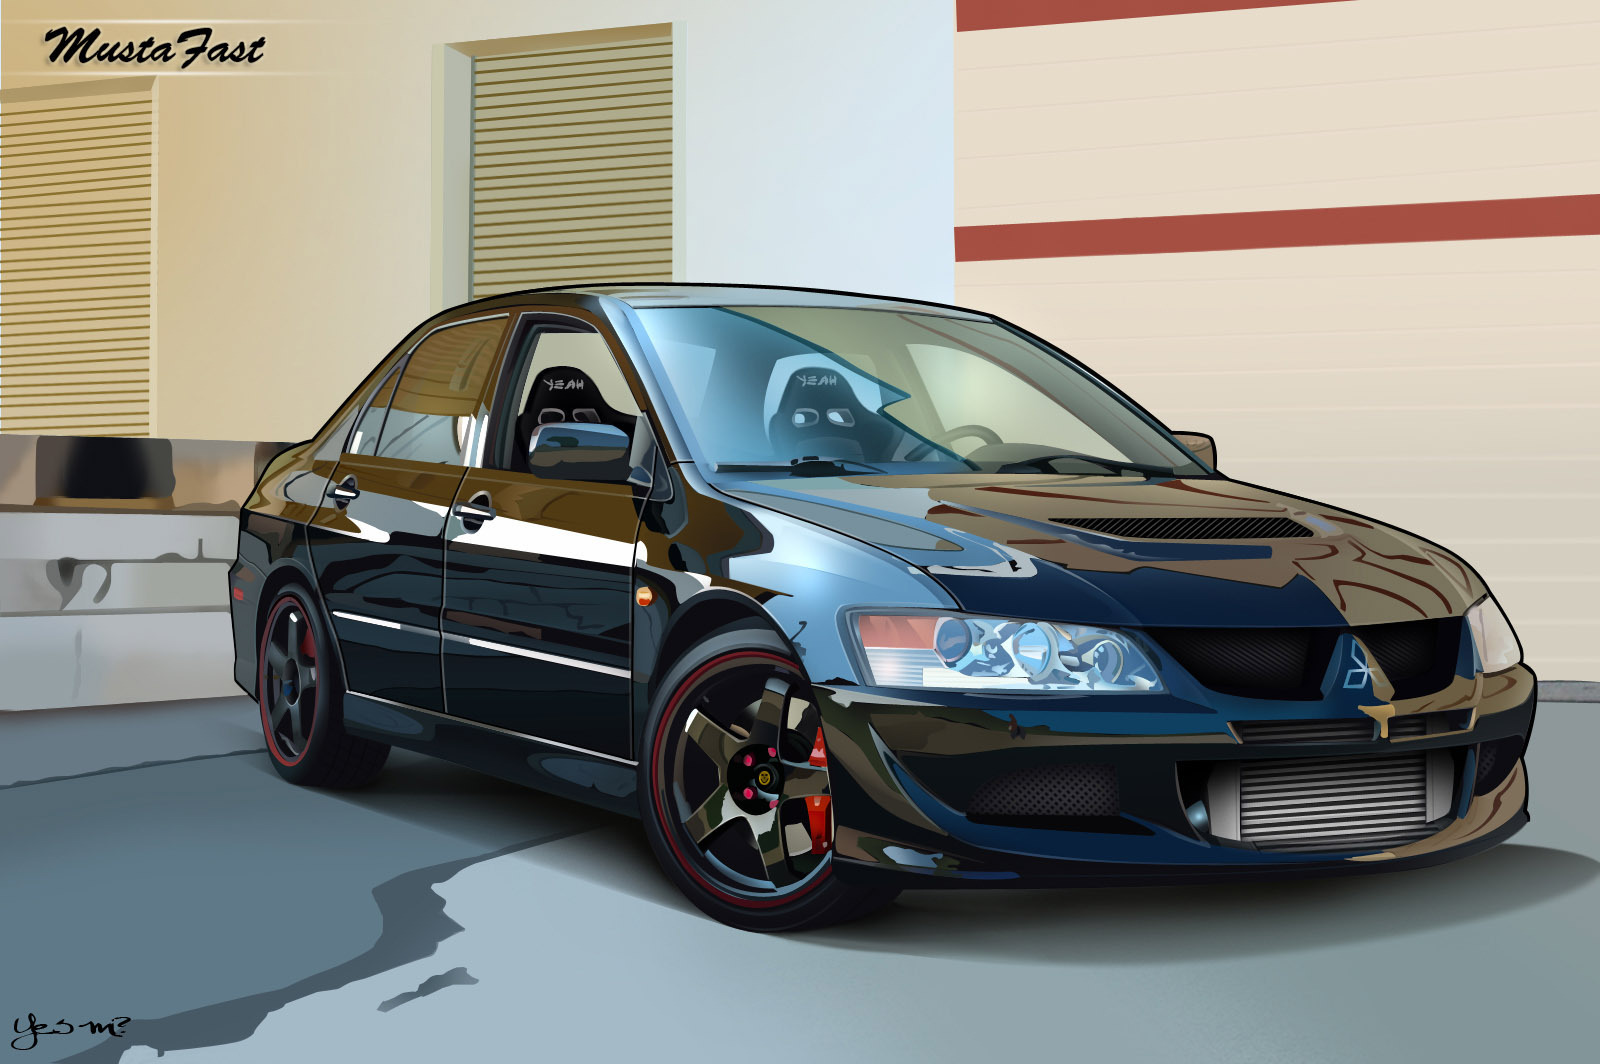 mitsubishi lancer evolution images mitsubishi evo hd wallpaper and background photos 13244352. Black Bedroom Furniture Sets. Home Design Ideas